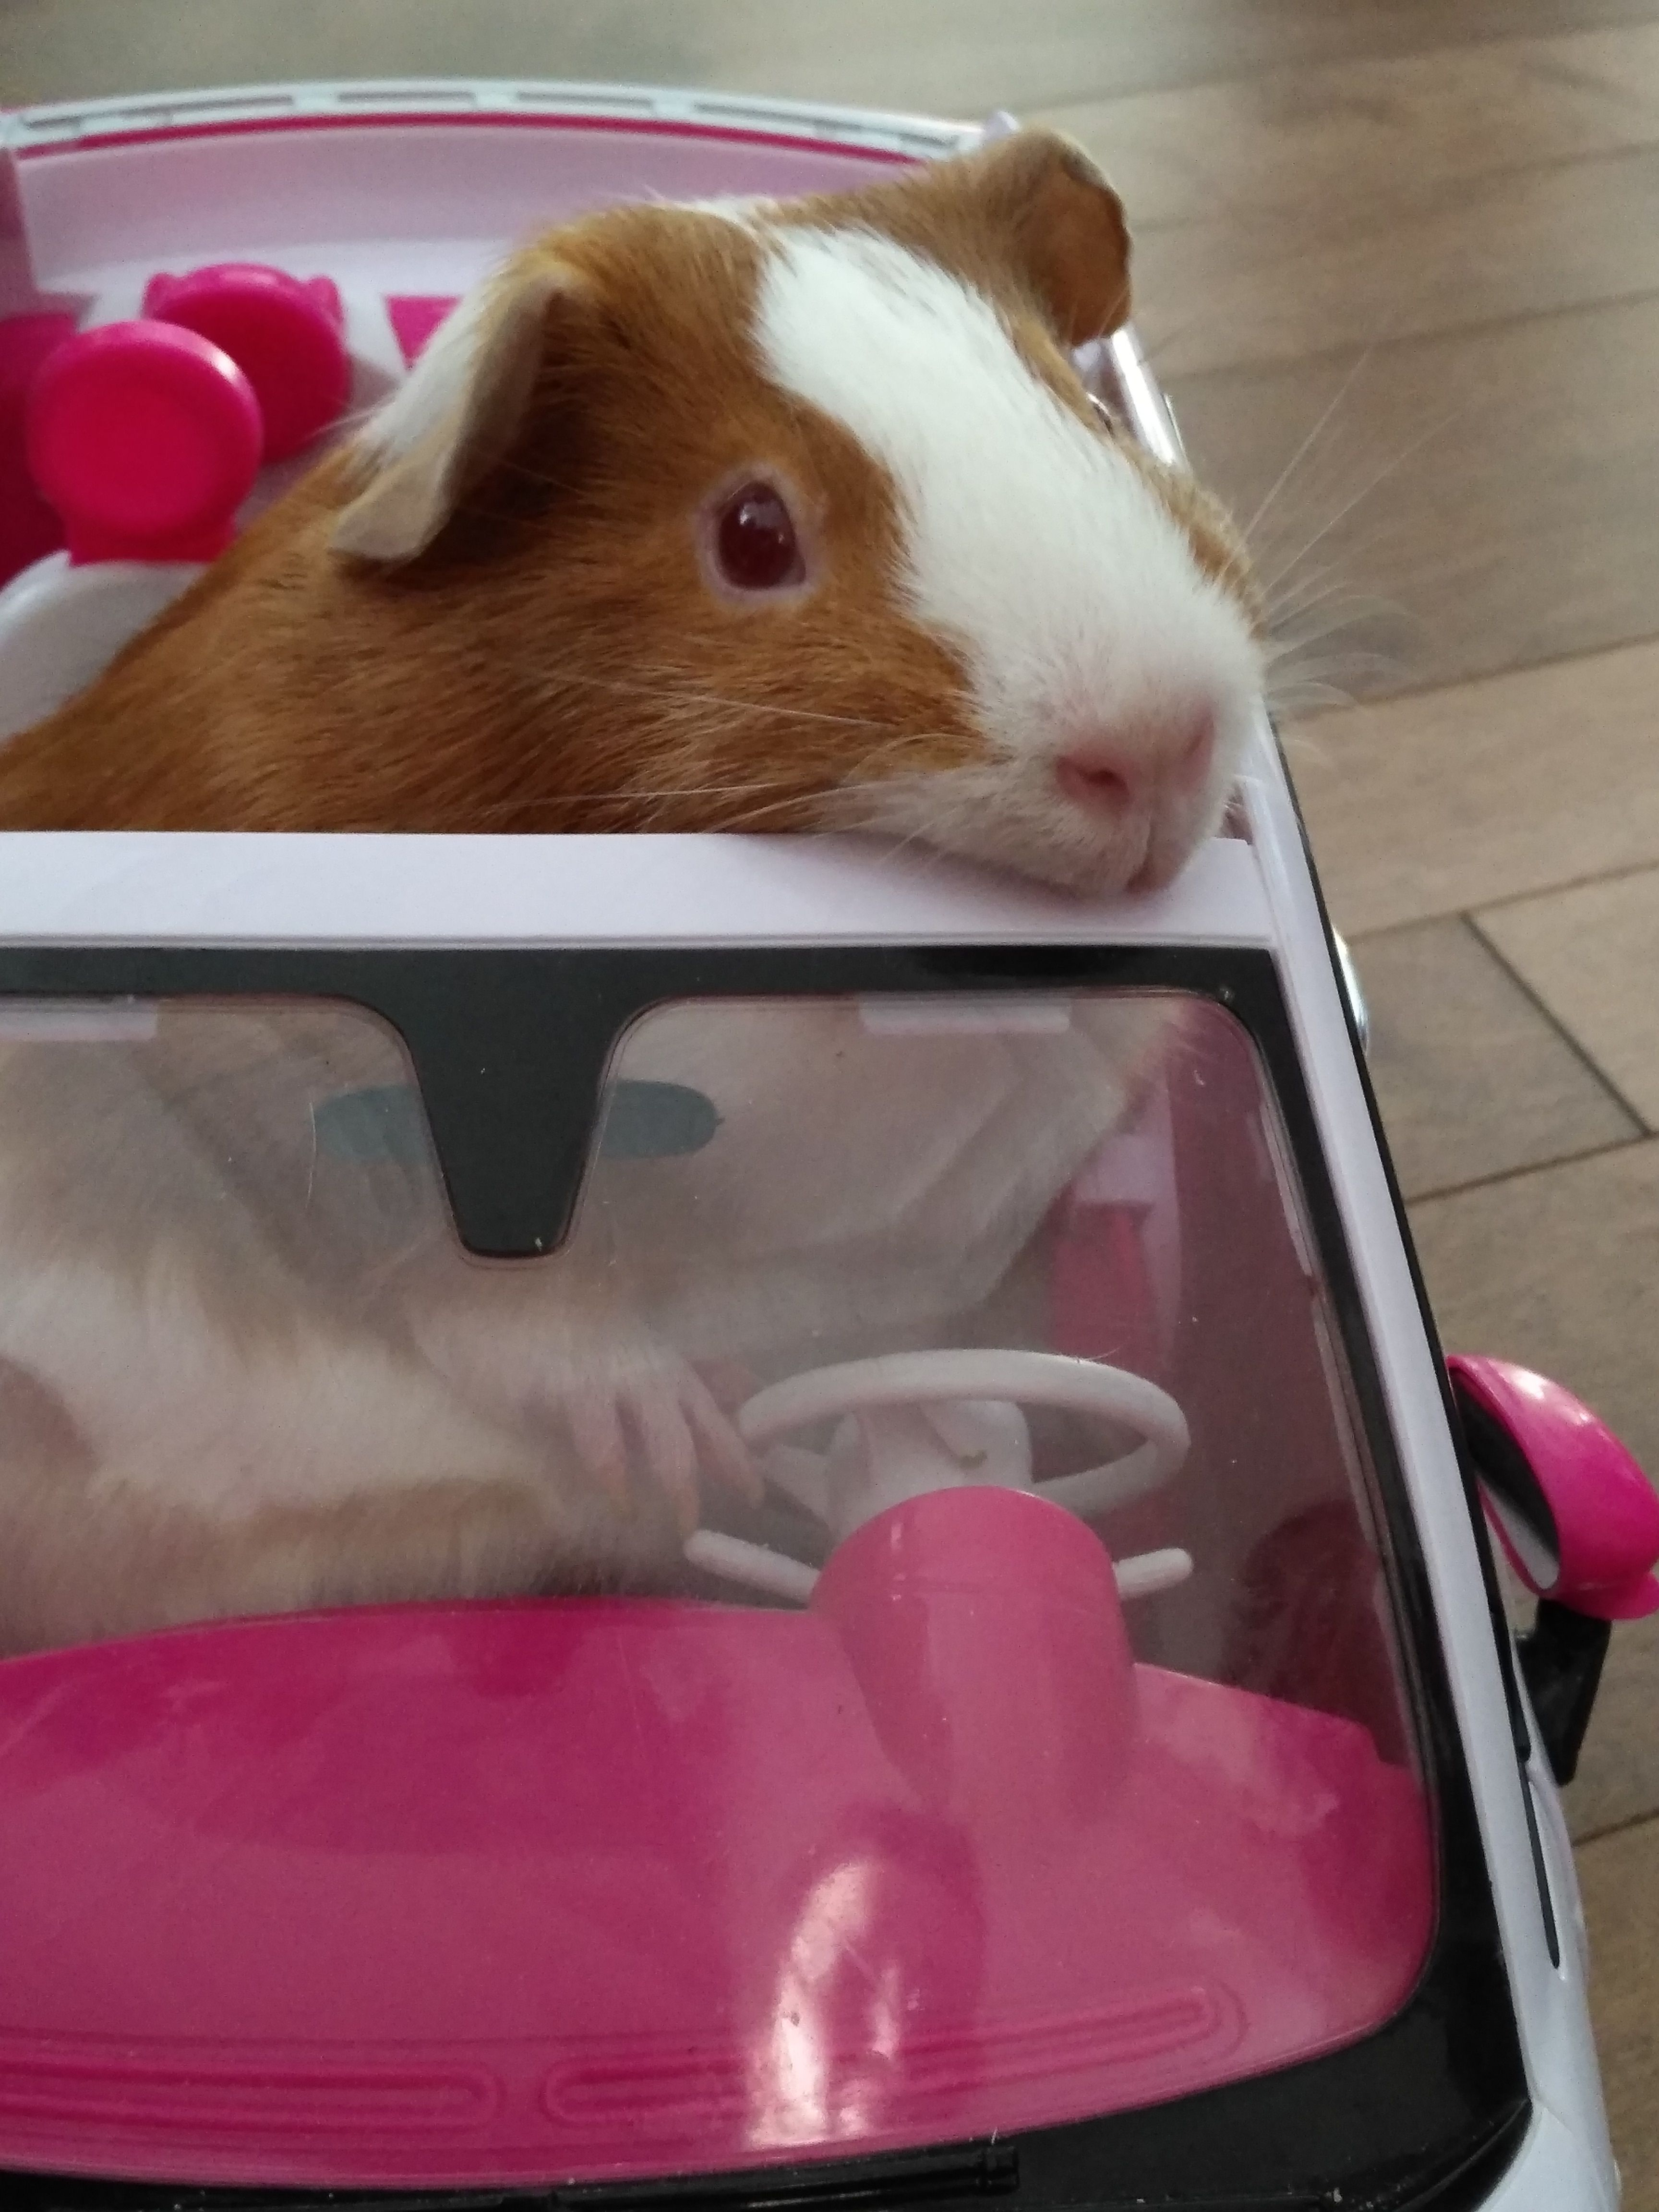 My pet guinea pig she thicc and she drive a barbie car #aww #cute #animals #cats #dogs #barbiecars My pet guinea pig she thicc and she drive a barbie car #aww #cute #animals #cats #dogs #barbiecars My pet guinea pig she thicc and she drive a barbie car #aww #cute #animals #cats #dogs #barbiecars My pet guinea pig she thicc and she drive a barbie car #aww #cute #animals #cats #dogs #barbiecars